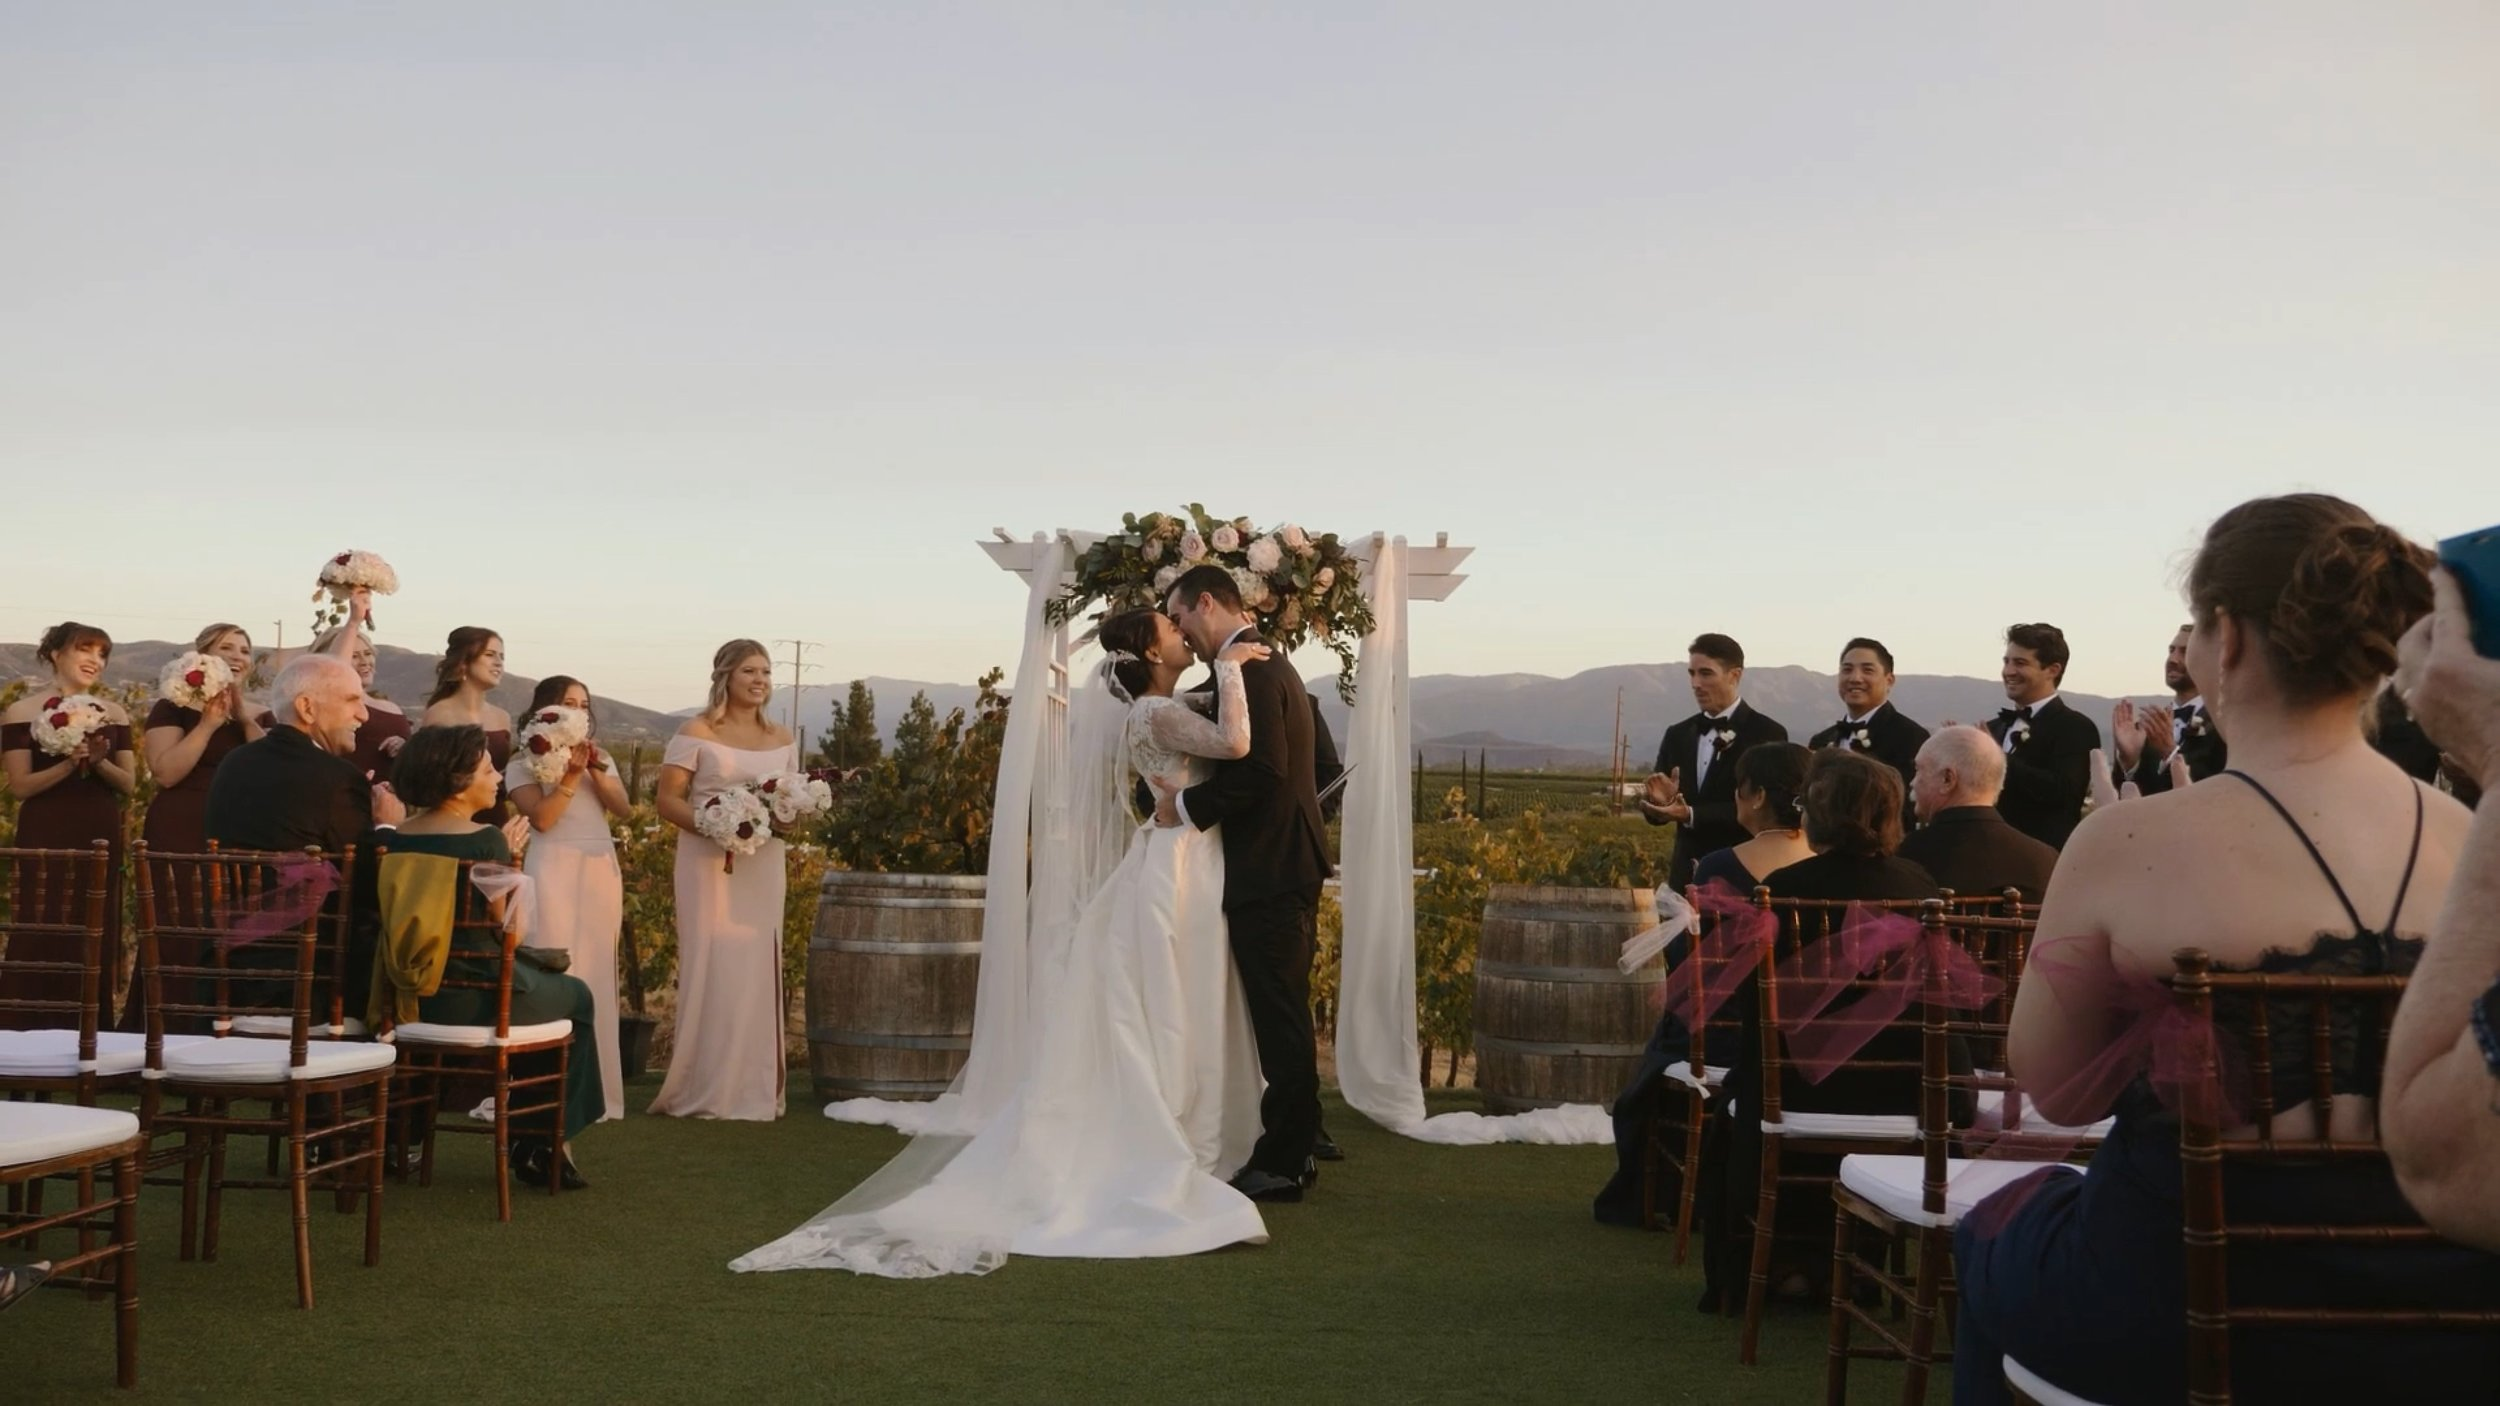 Bride and groom kissing at the altar in front of the rolling hills of a California winery.